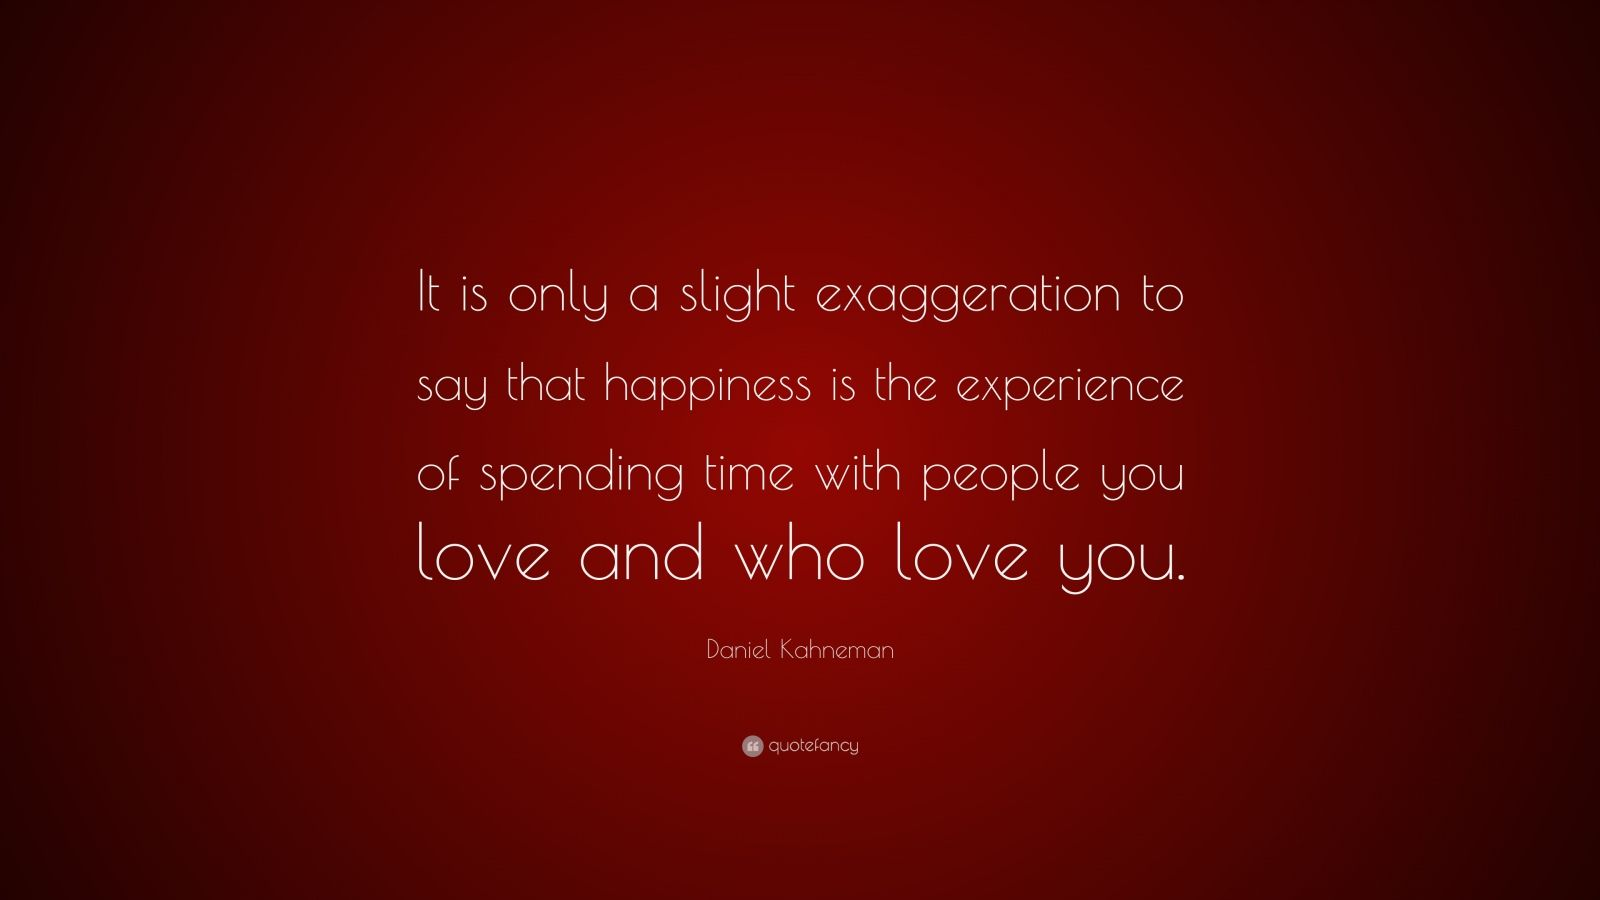 """Daniel Kahneman Quote: """"It is only a slight exaggeration to say that happiness is the experience of spending time with people you love and who love you."""""""